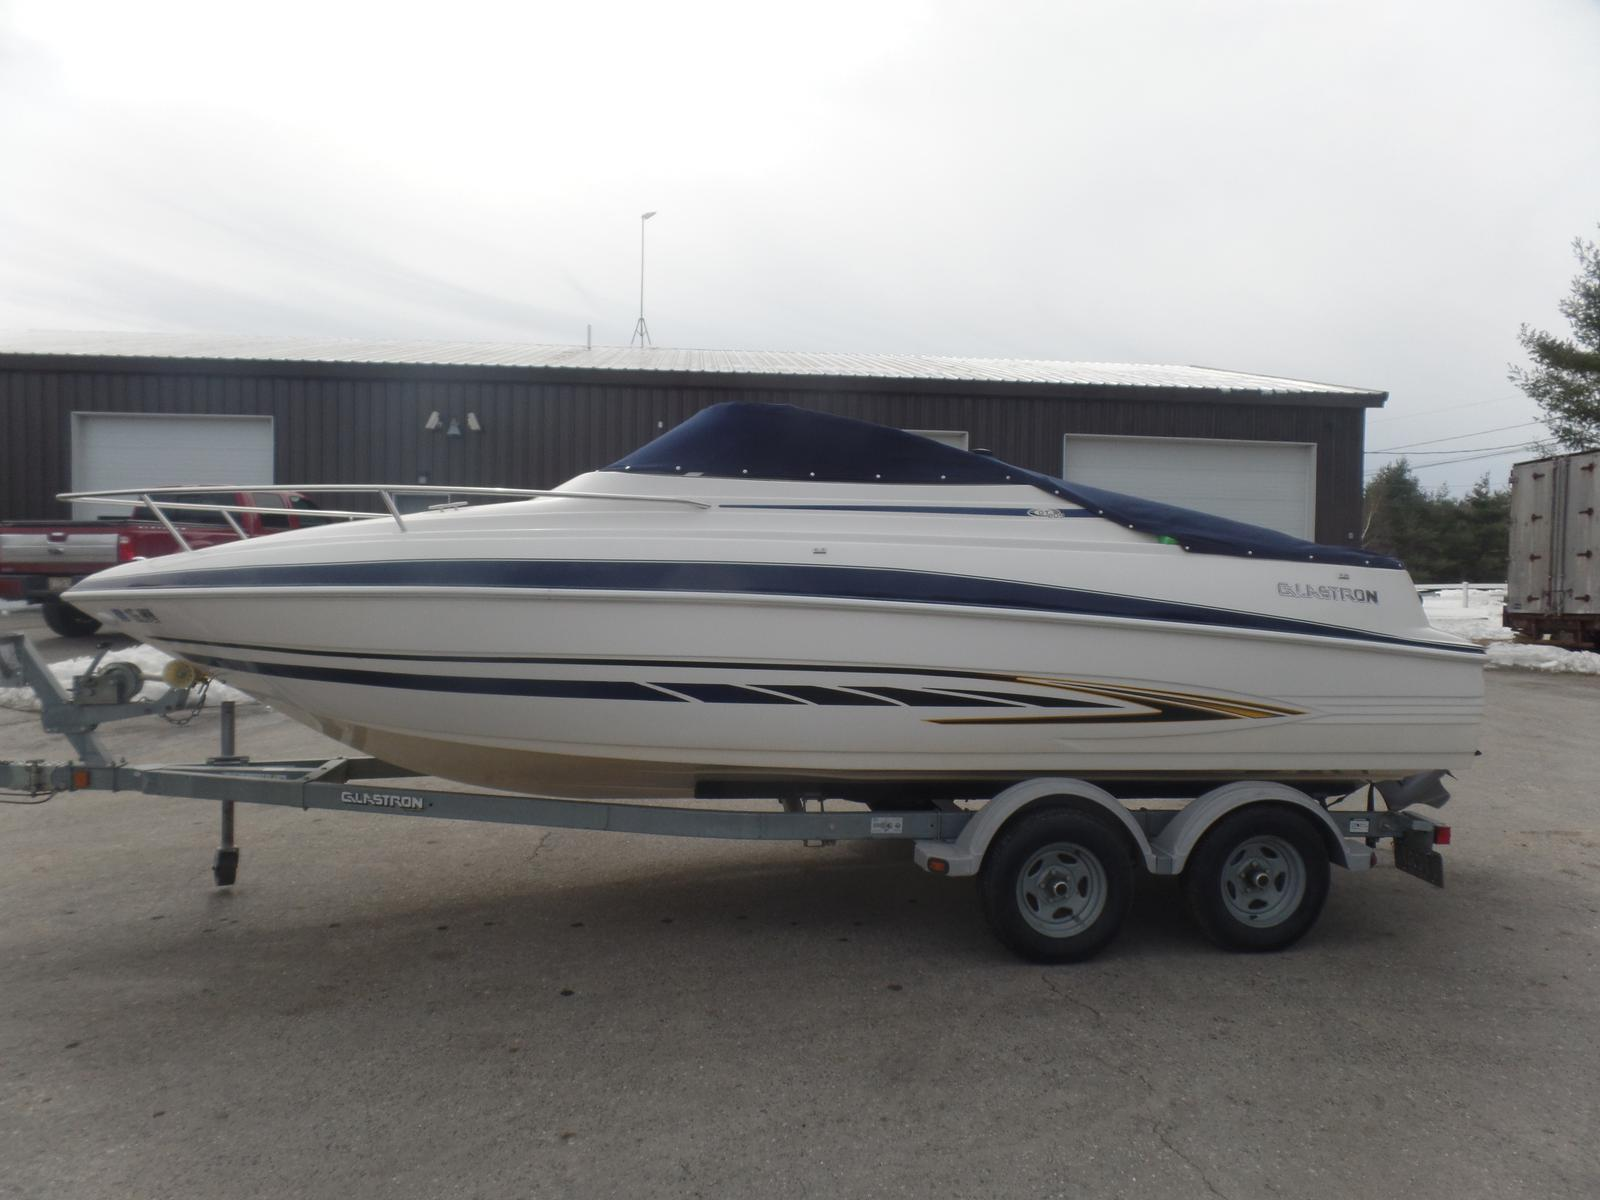 2008 Glastron GT-209 for sale in Litchfield, ME  Nadeau's